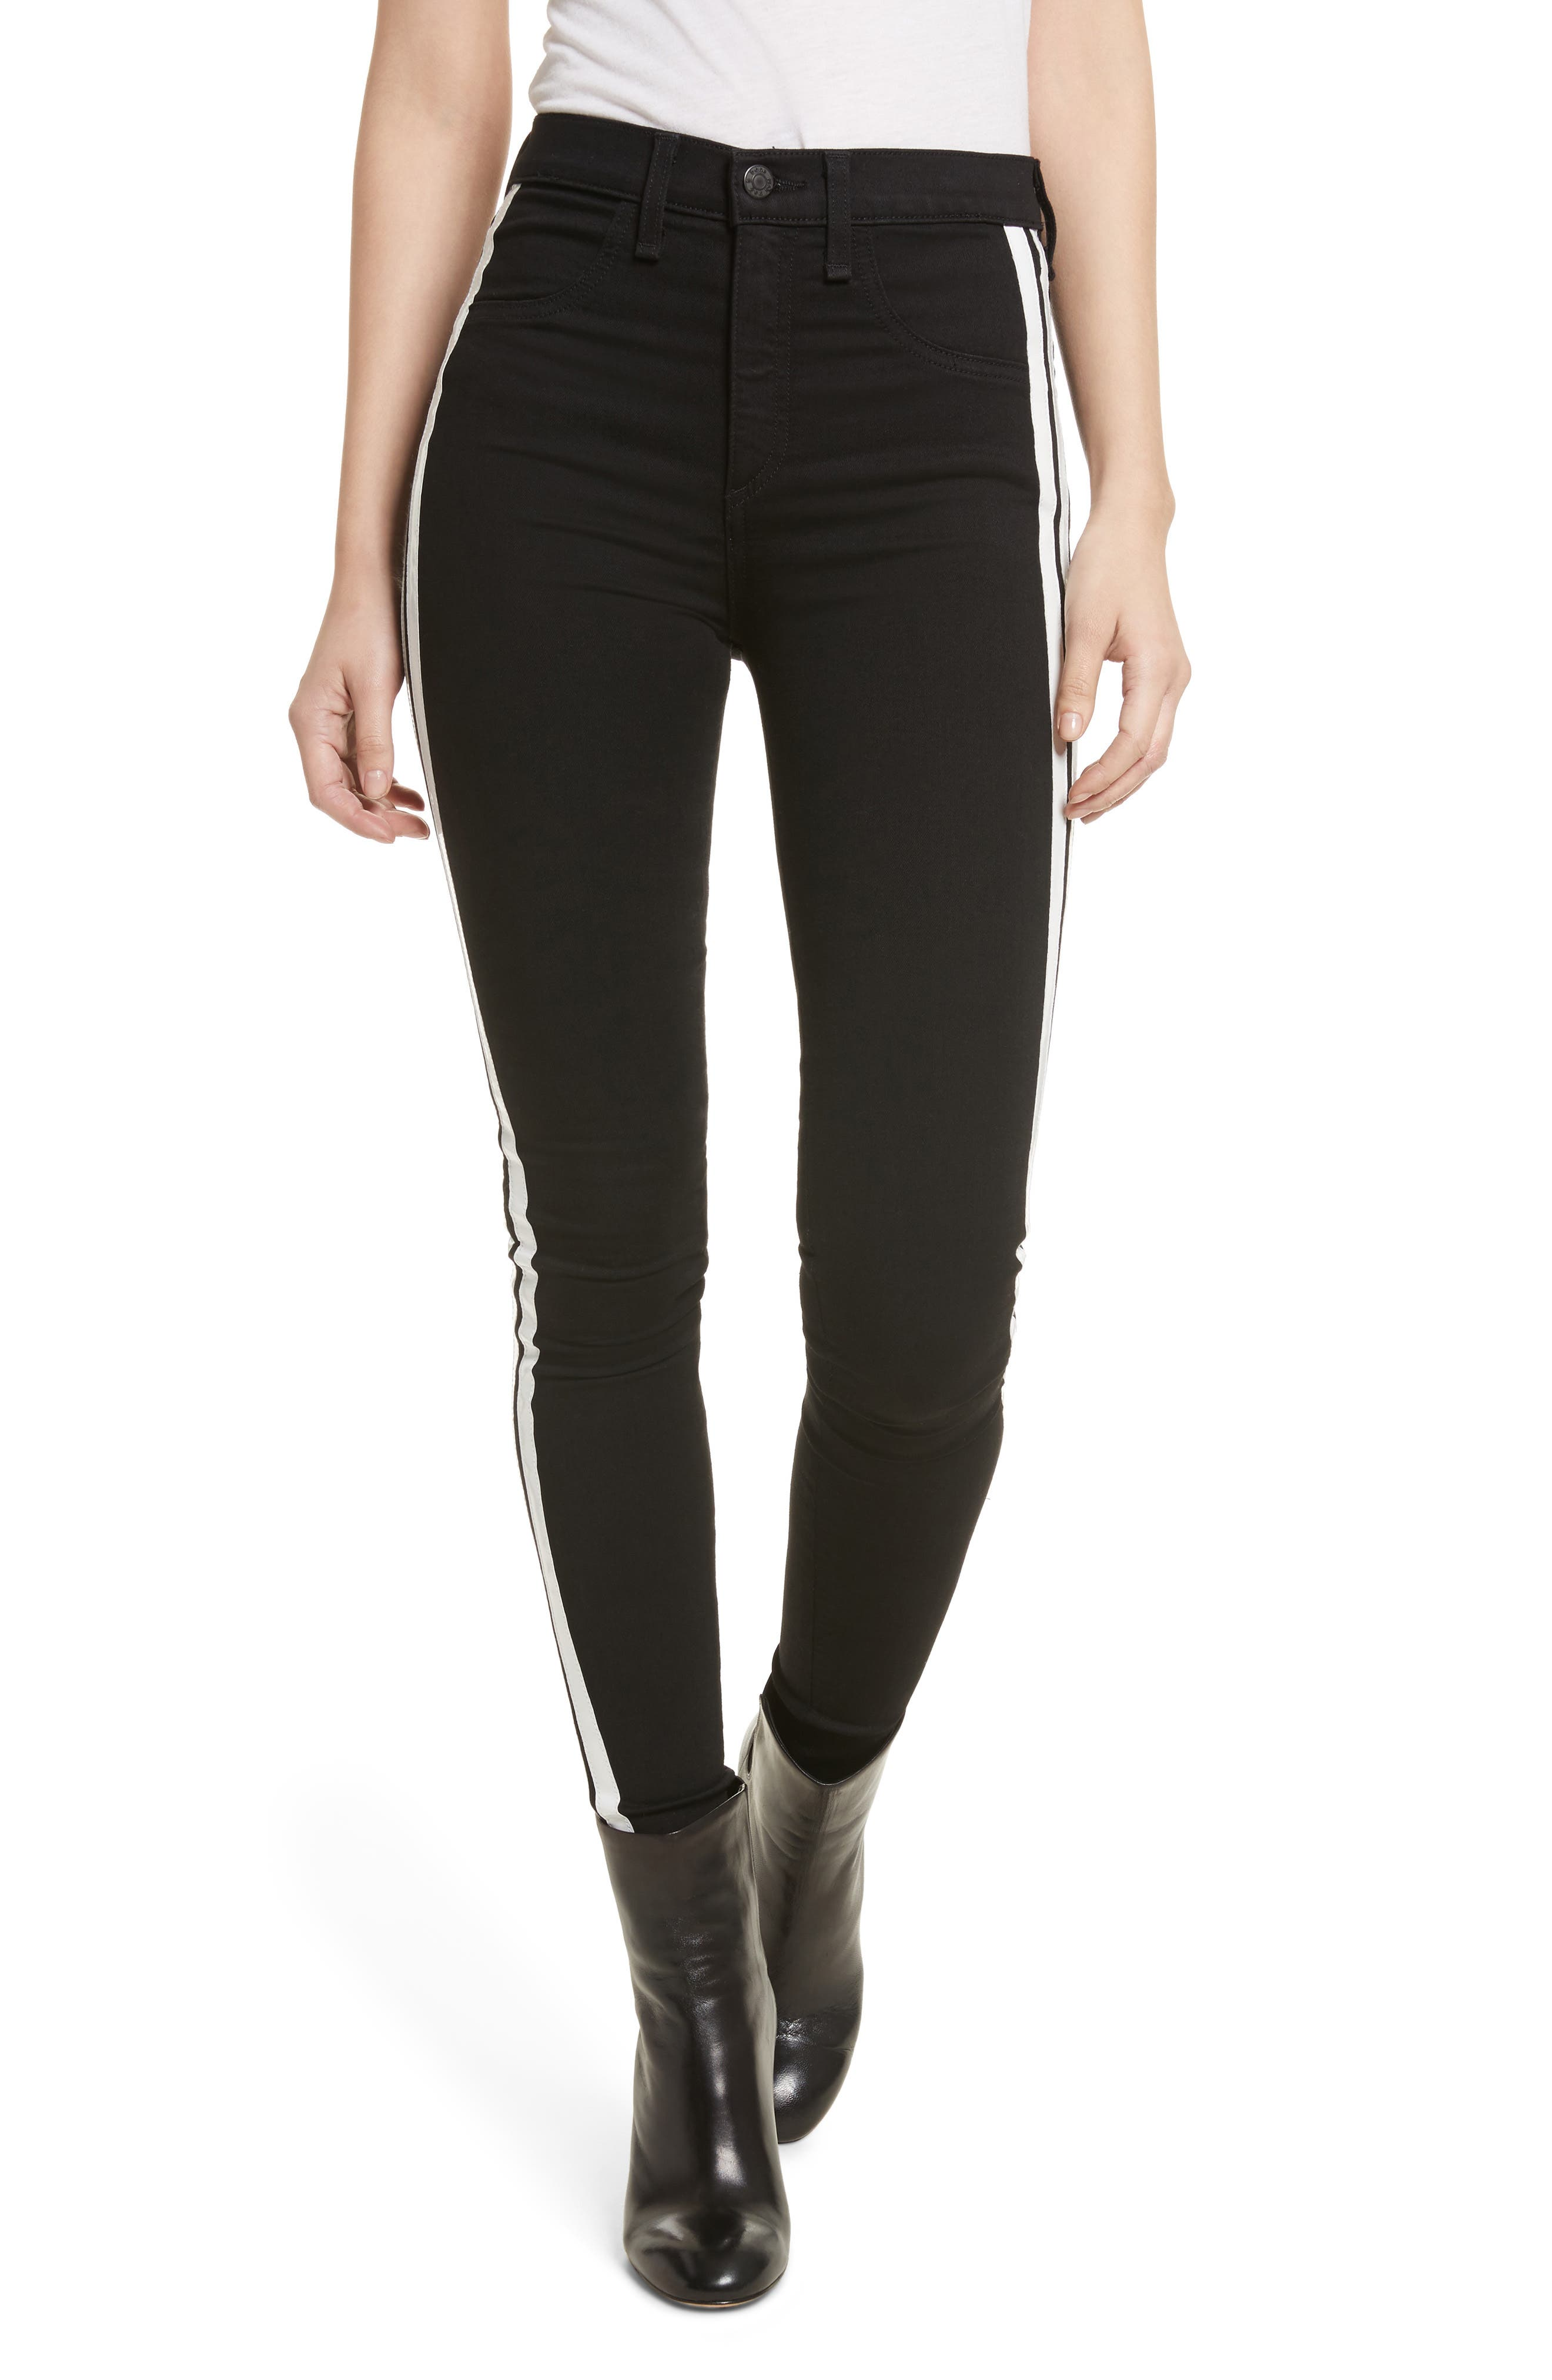 Mito High Waist Skinny Jeans,                         Main,                         color, 001